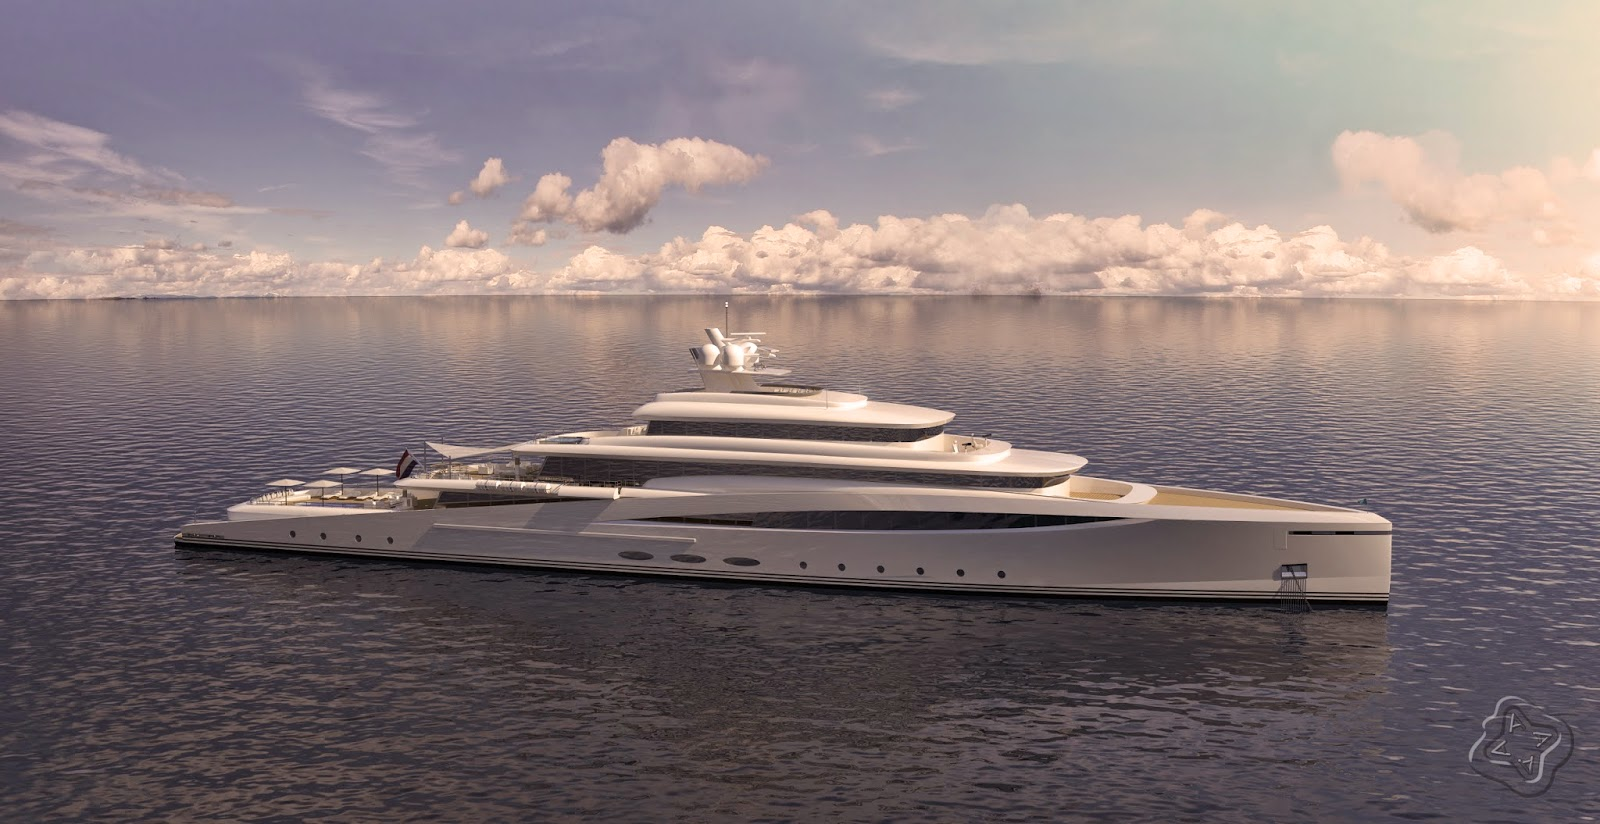 94 Meter Motor Yacht 'Purity' | NBJA English